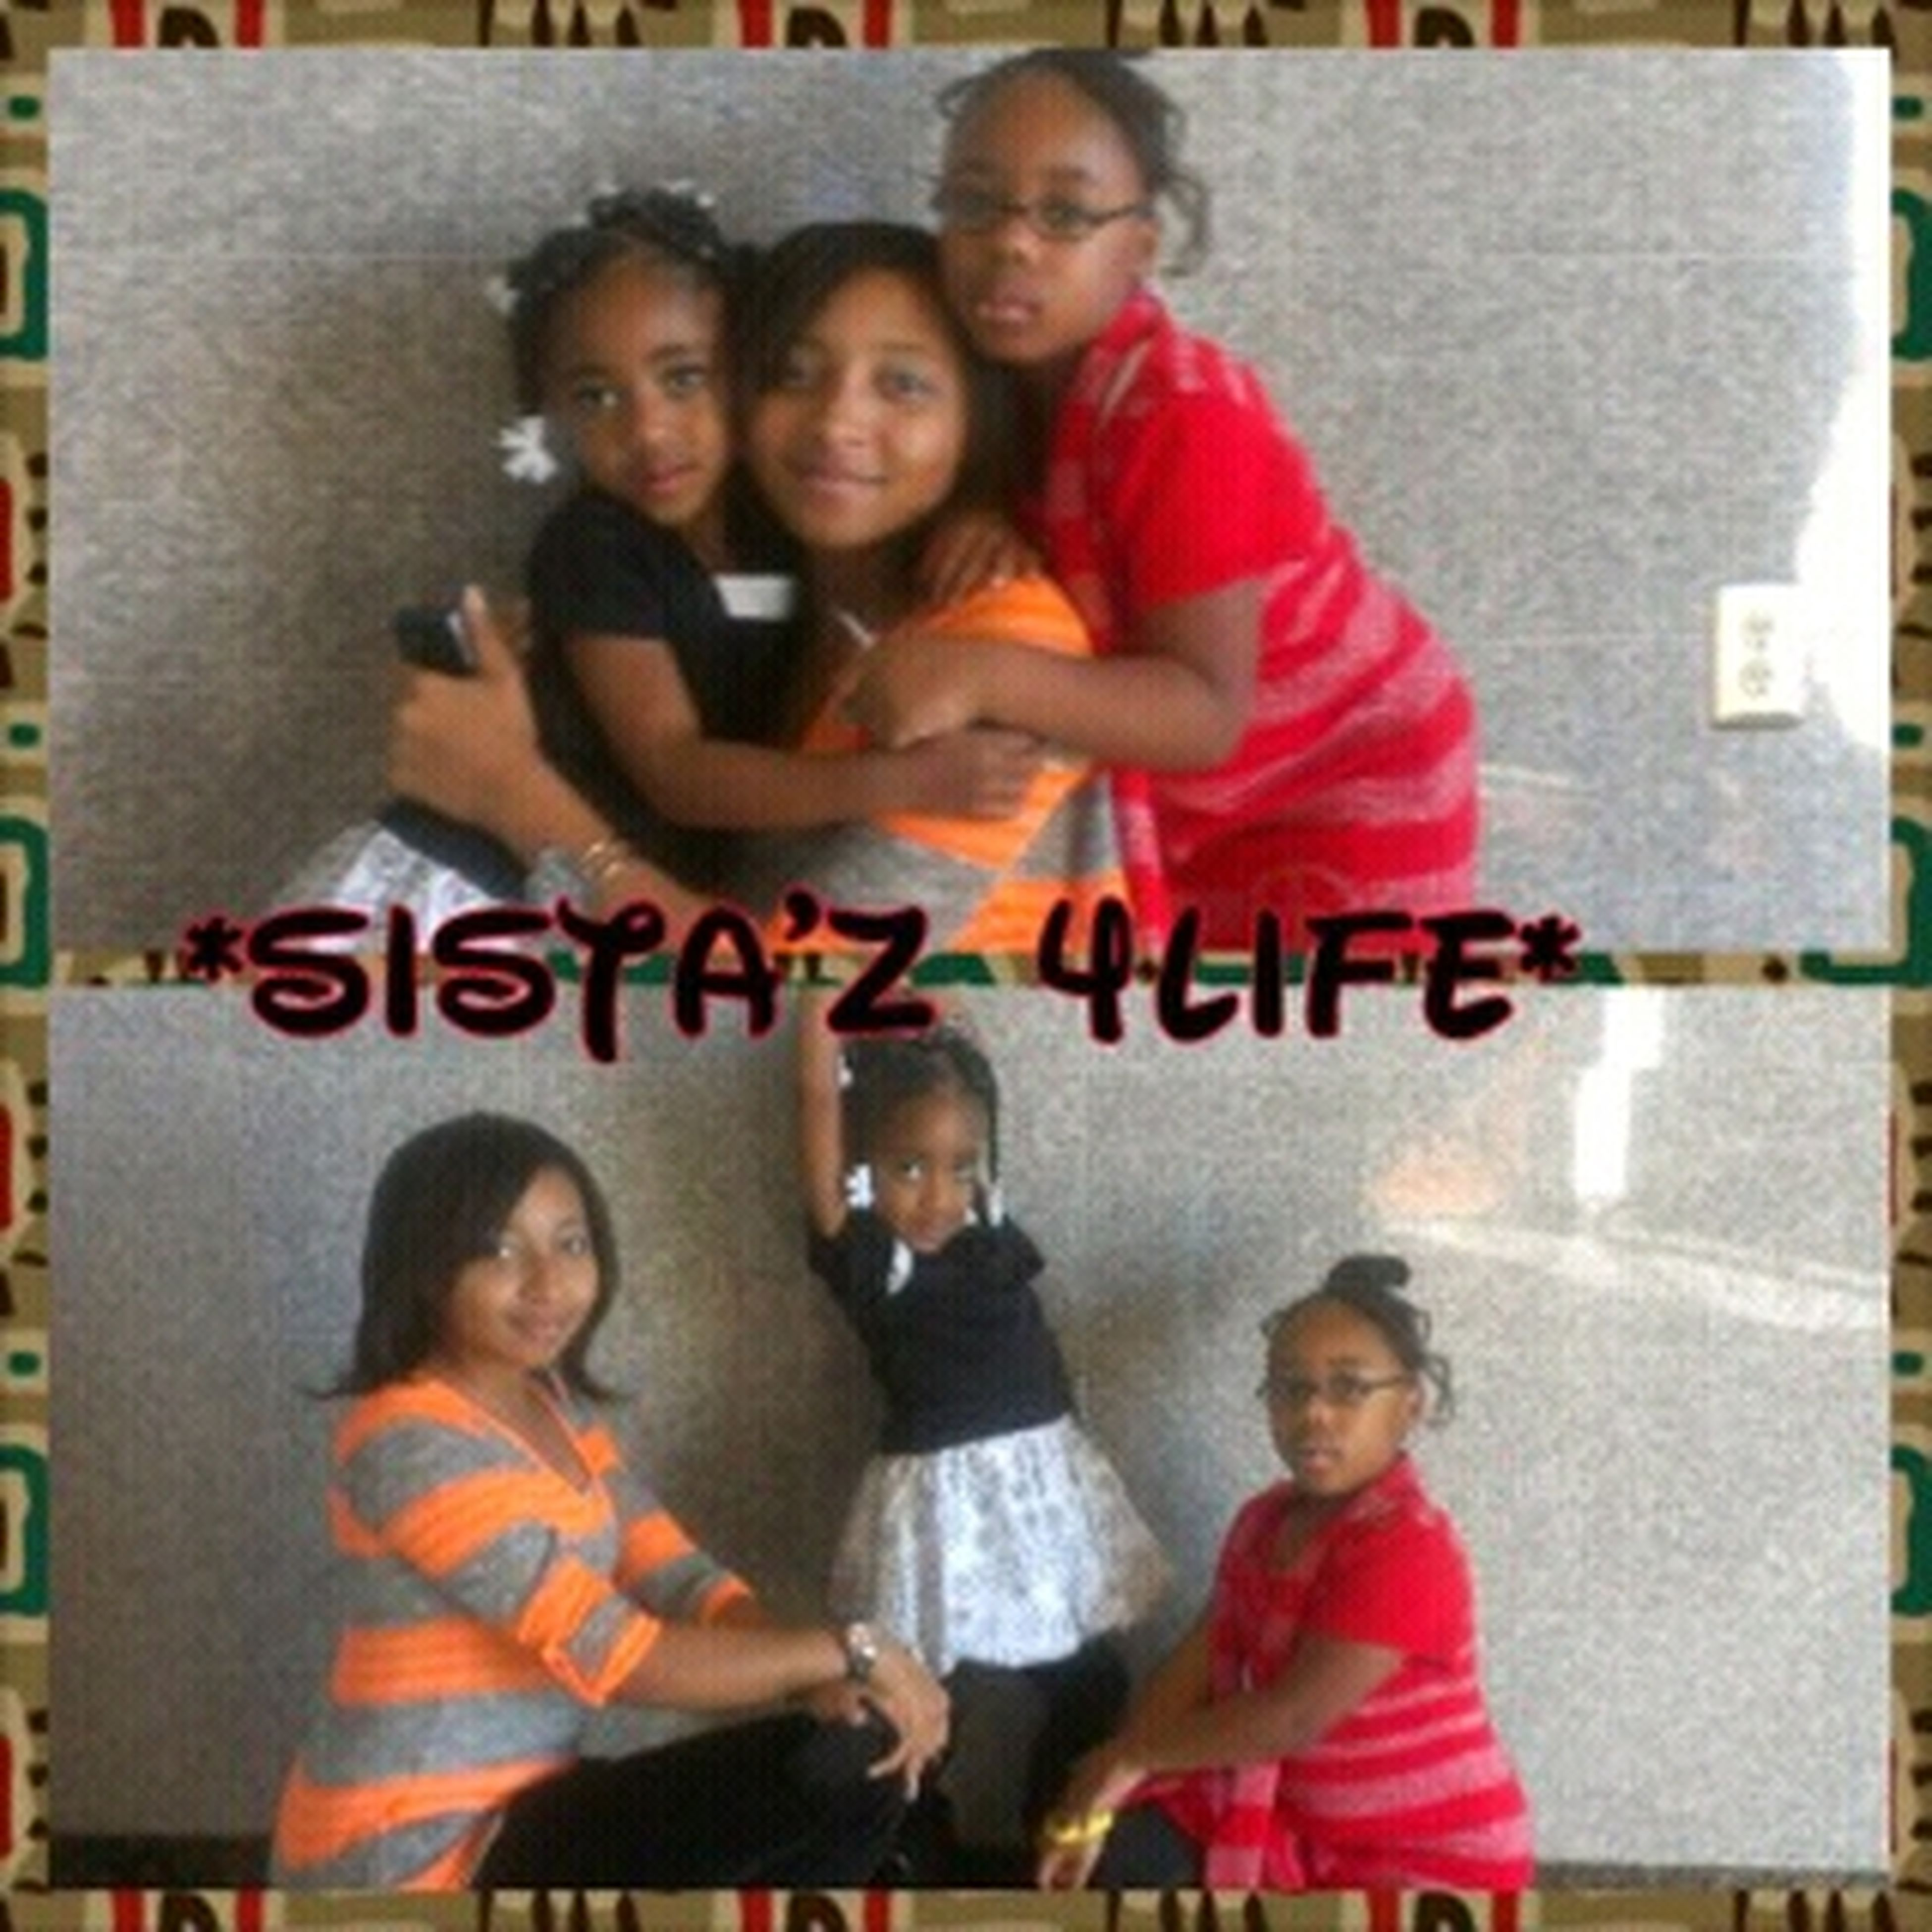 Me And My Beautiful Little Sisters